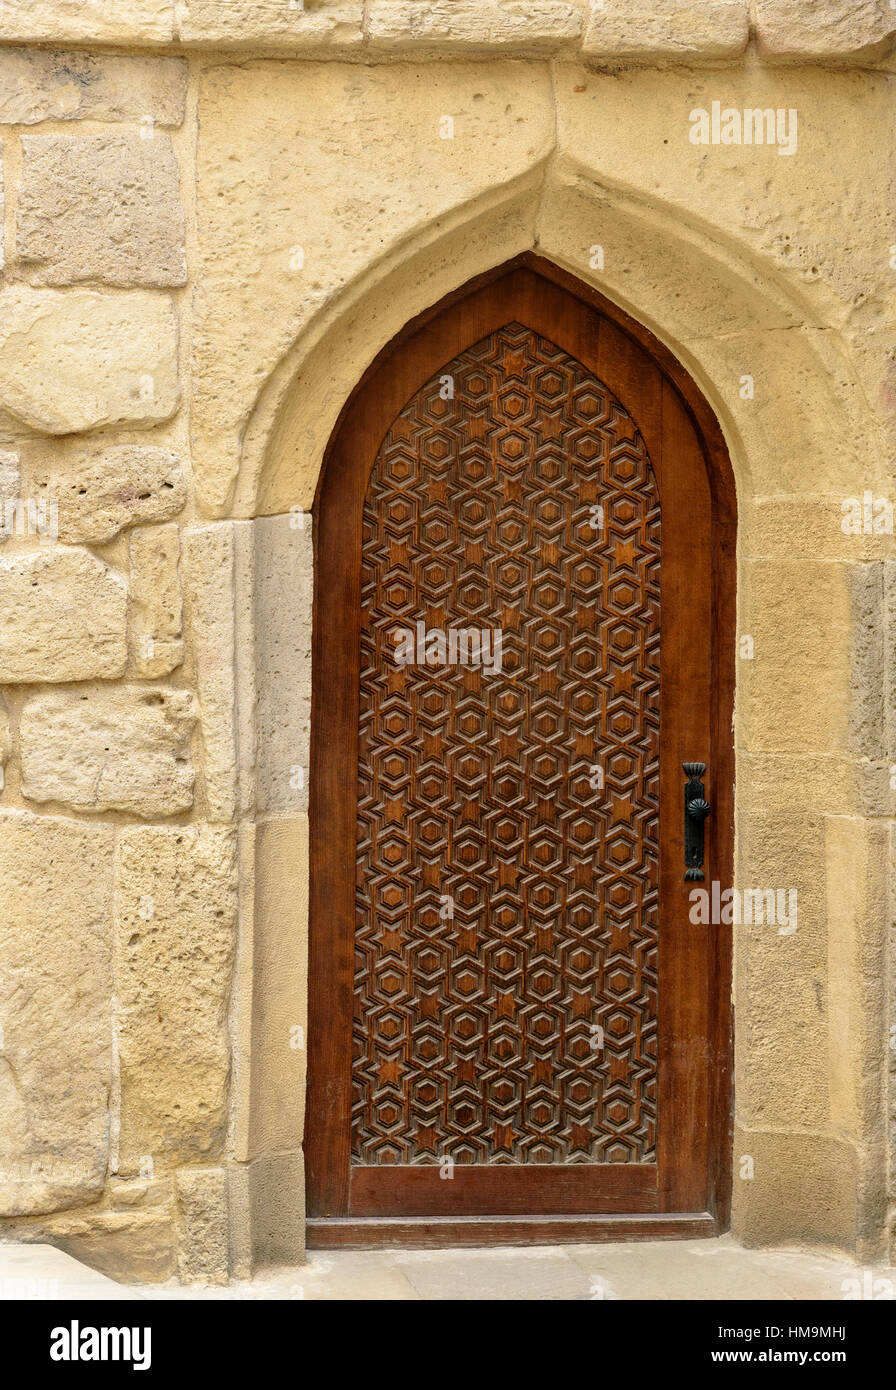 Traditional wooden door with curved arch in Old city, Icheri Sheher is the historical core of Baku. Azerbaijan. - Stock Image